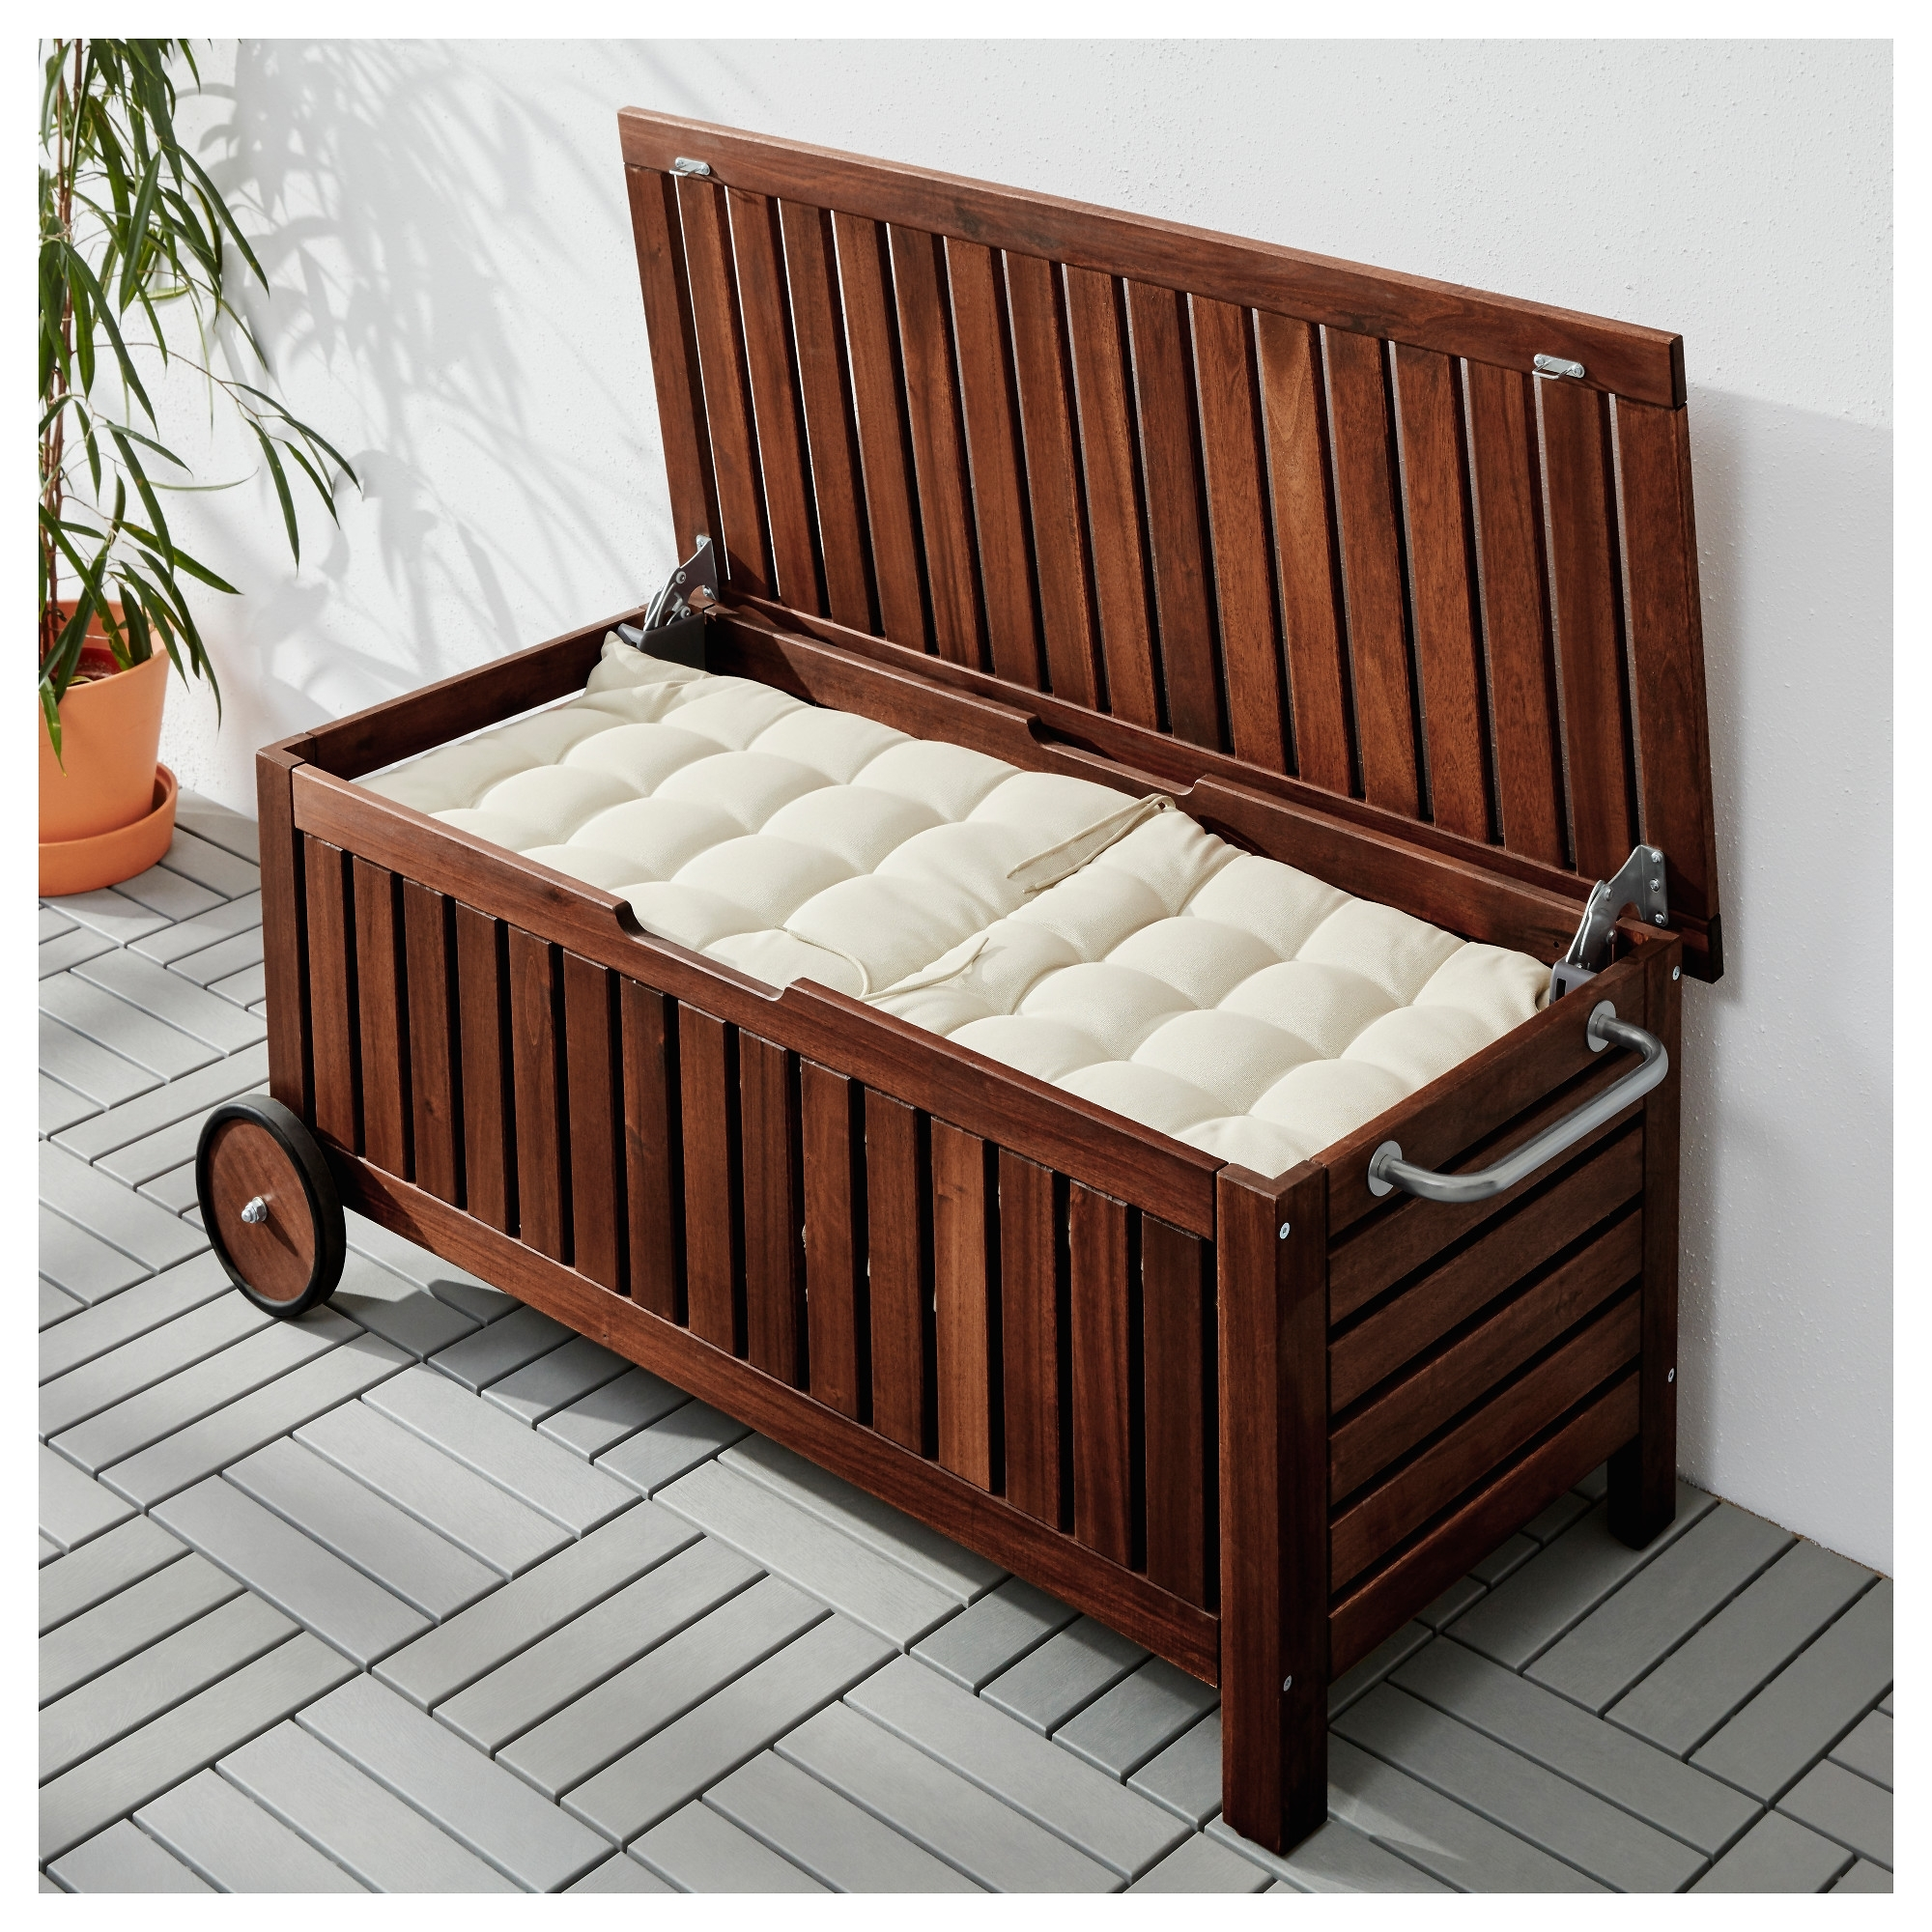 Pplar Storage Bench Outdoor Ikea Intended For Outdoor Cushion Storage Bench Classic Outdoor Cushion Storage Bench